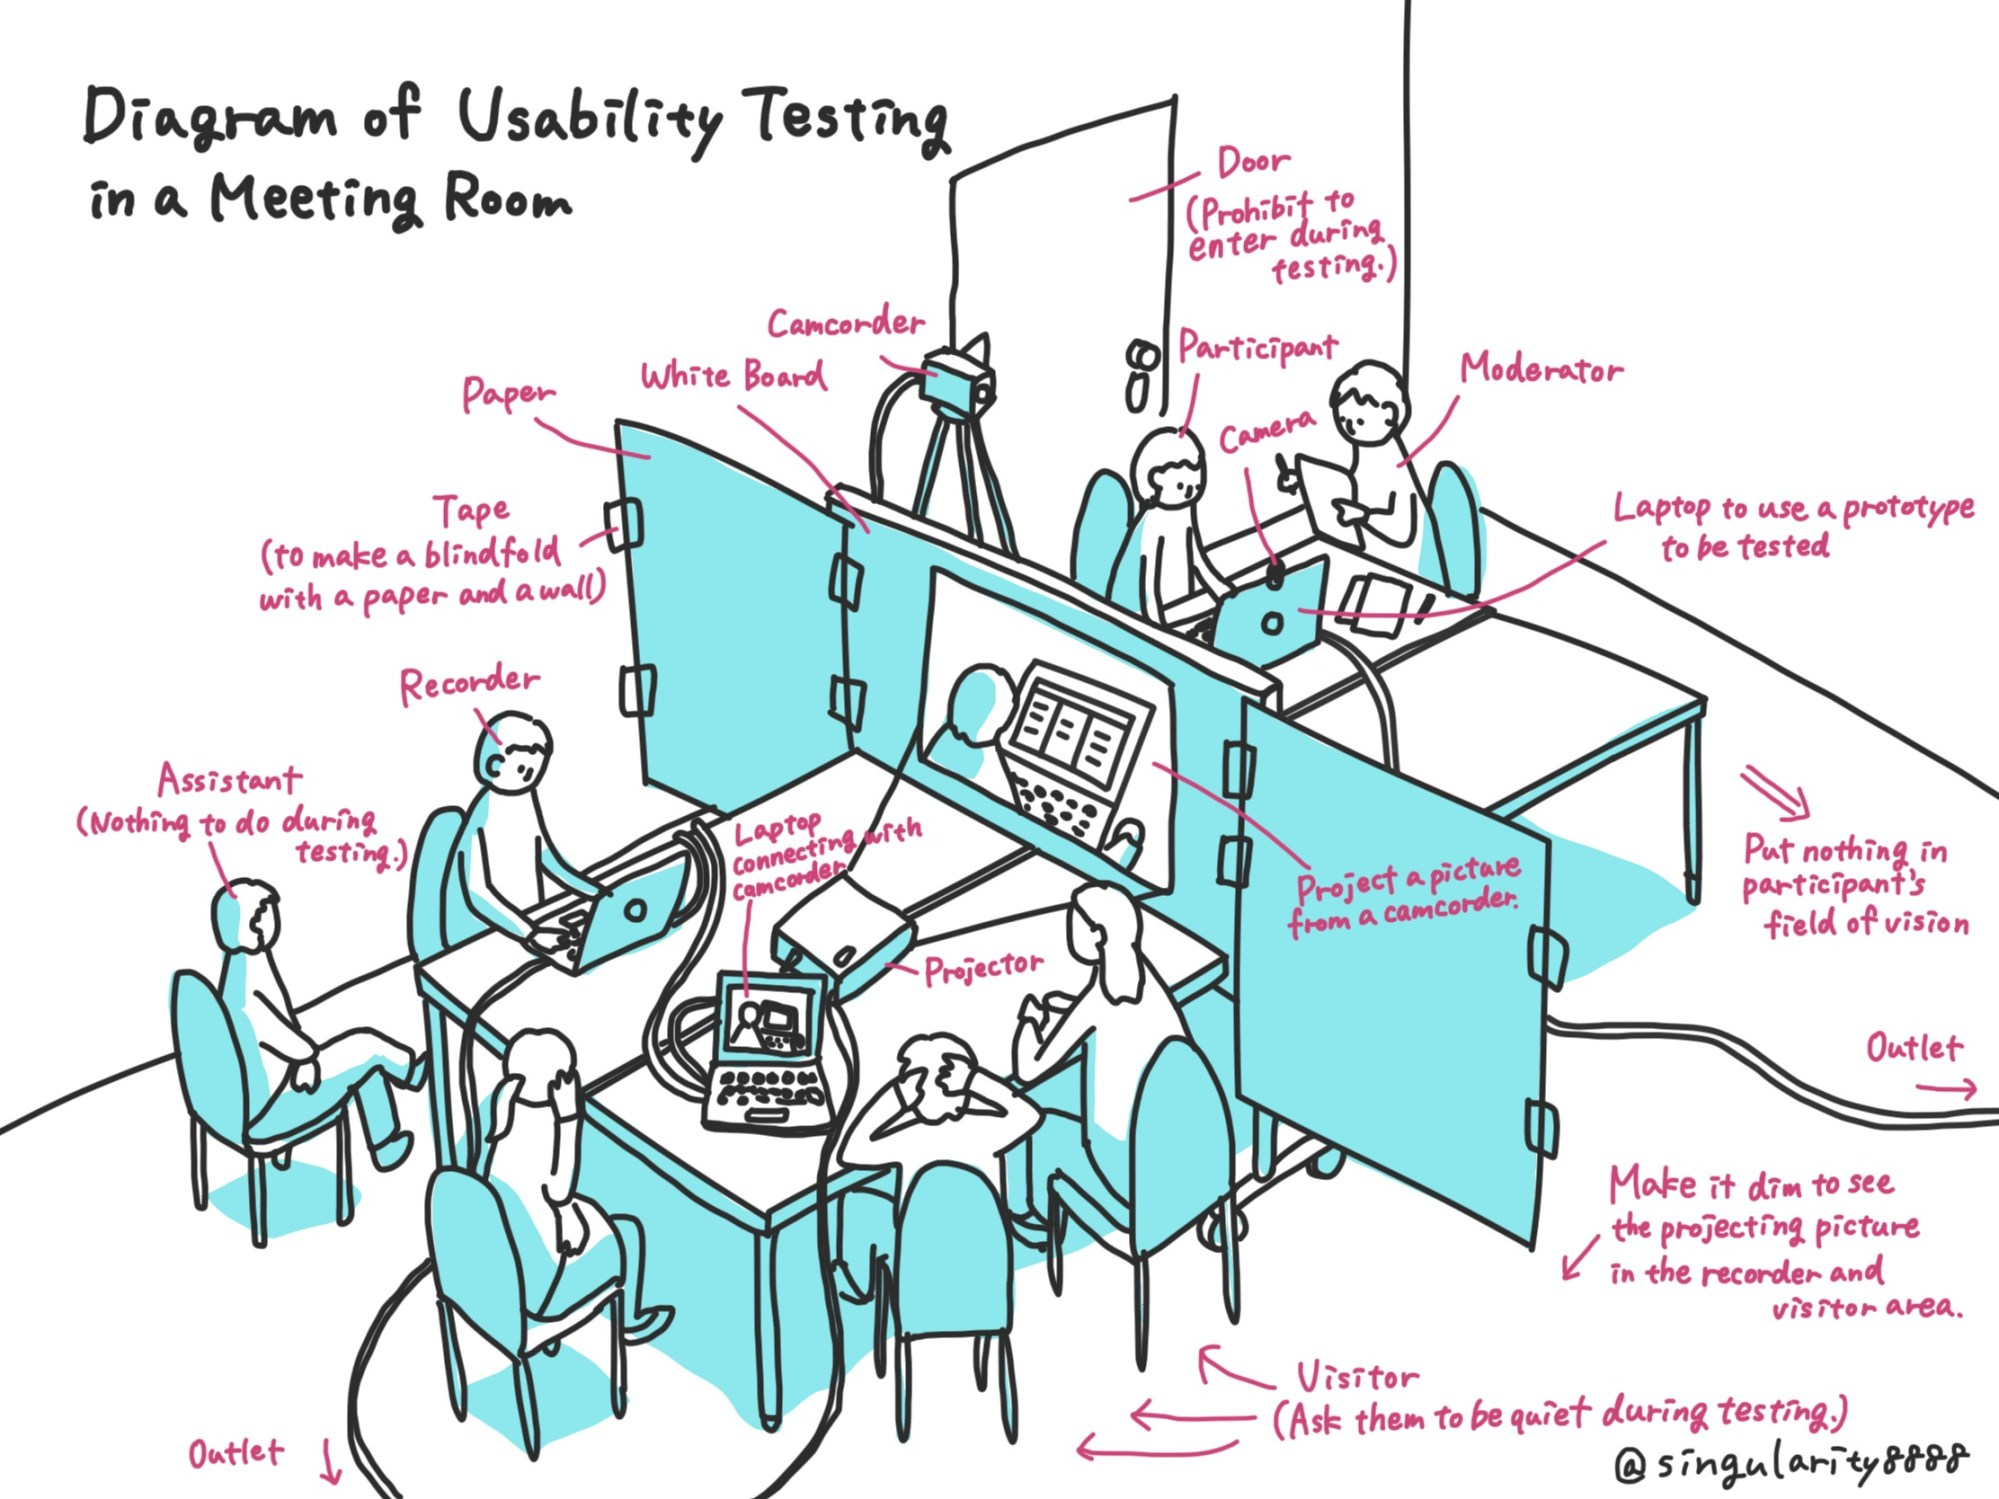 hight resolution of diagram of usability testing in a meeting room image